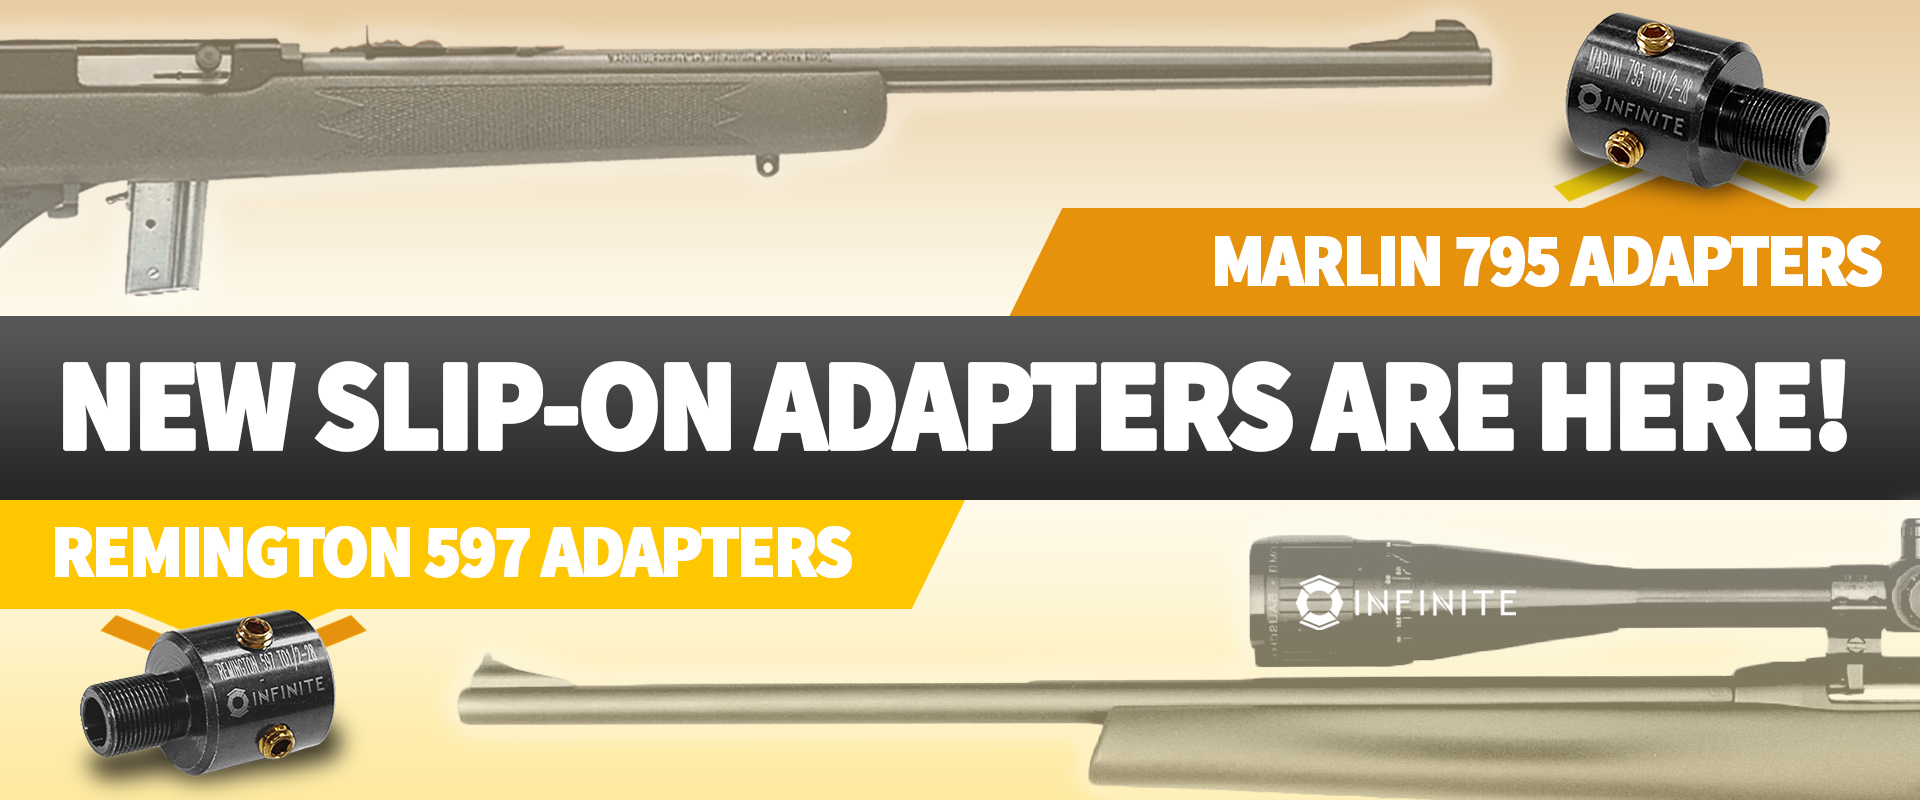 new-slip-on-adapters-homepage.jpg